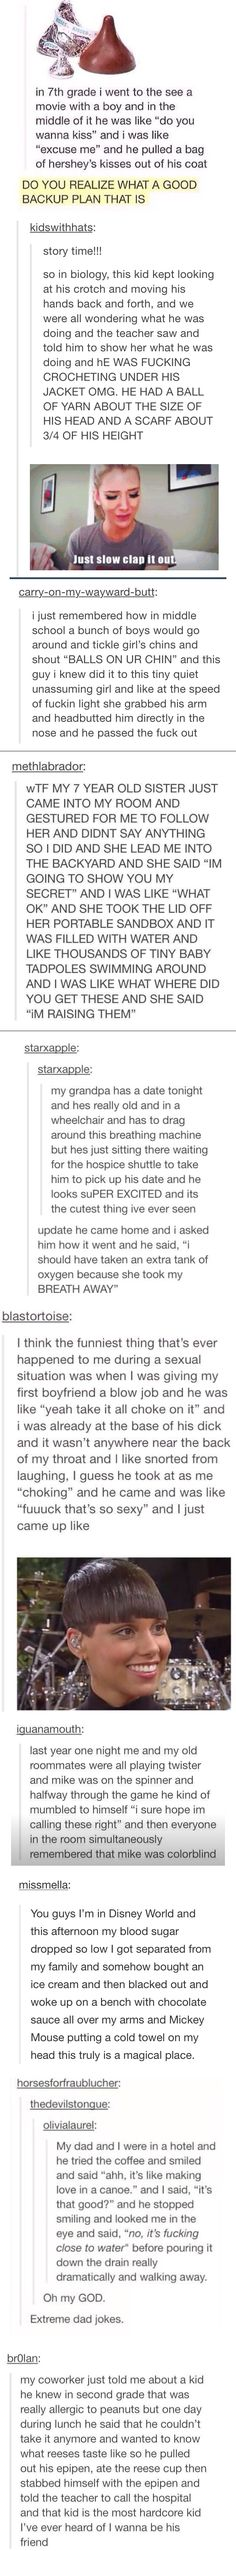 Tumblr: backup plans, extracurricular activities, cuteness, dating, I don't even know, magic, hardcore